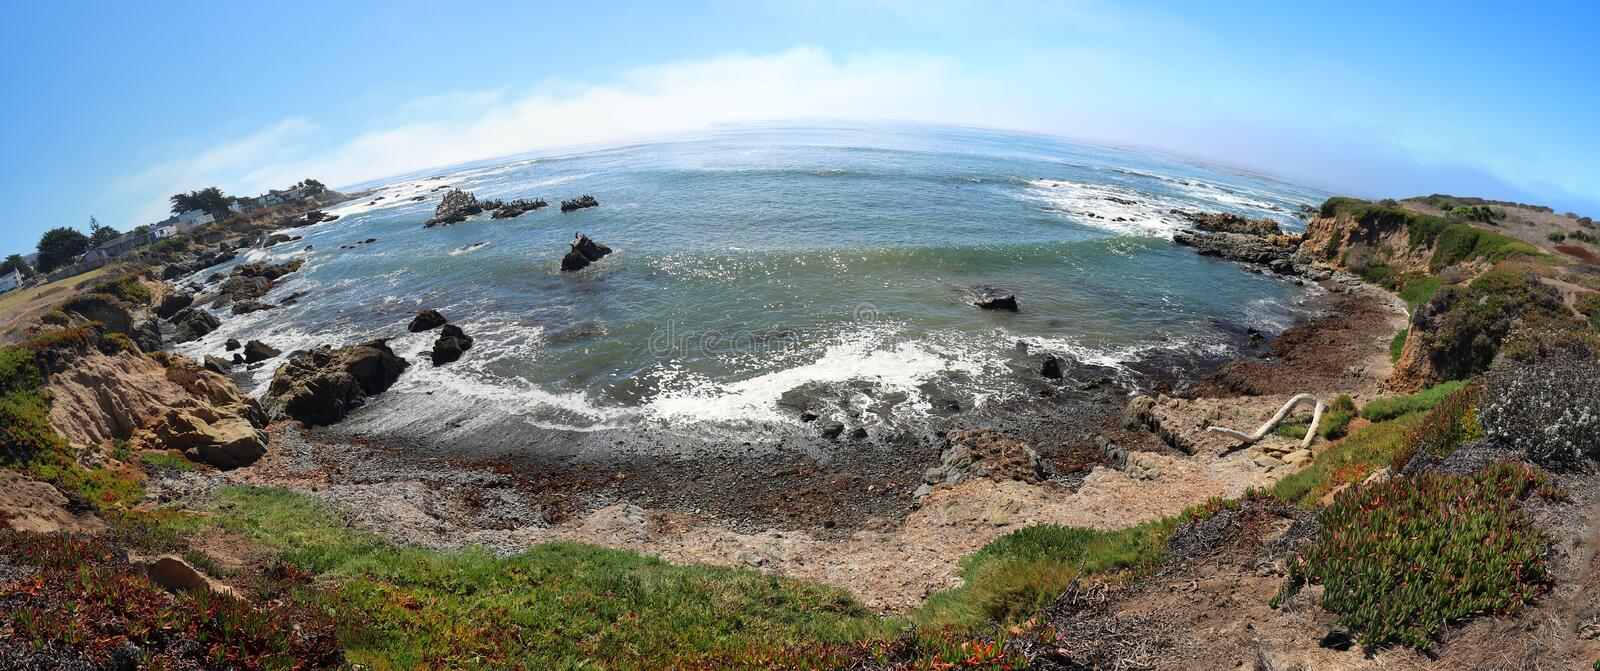 Fisheye view of rugged Central California coastline at Cambria California USA royalty free stock photography